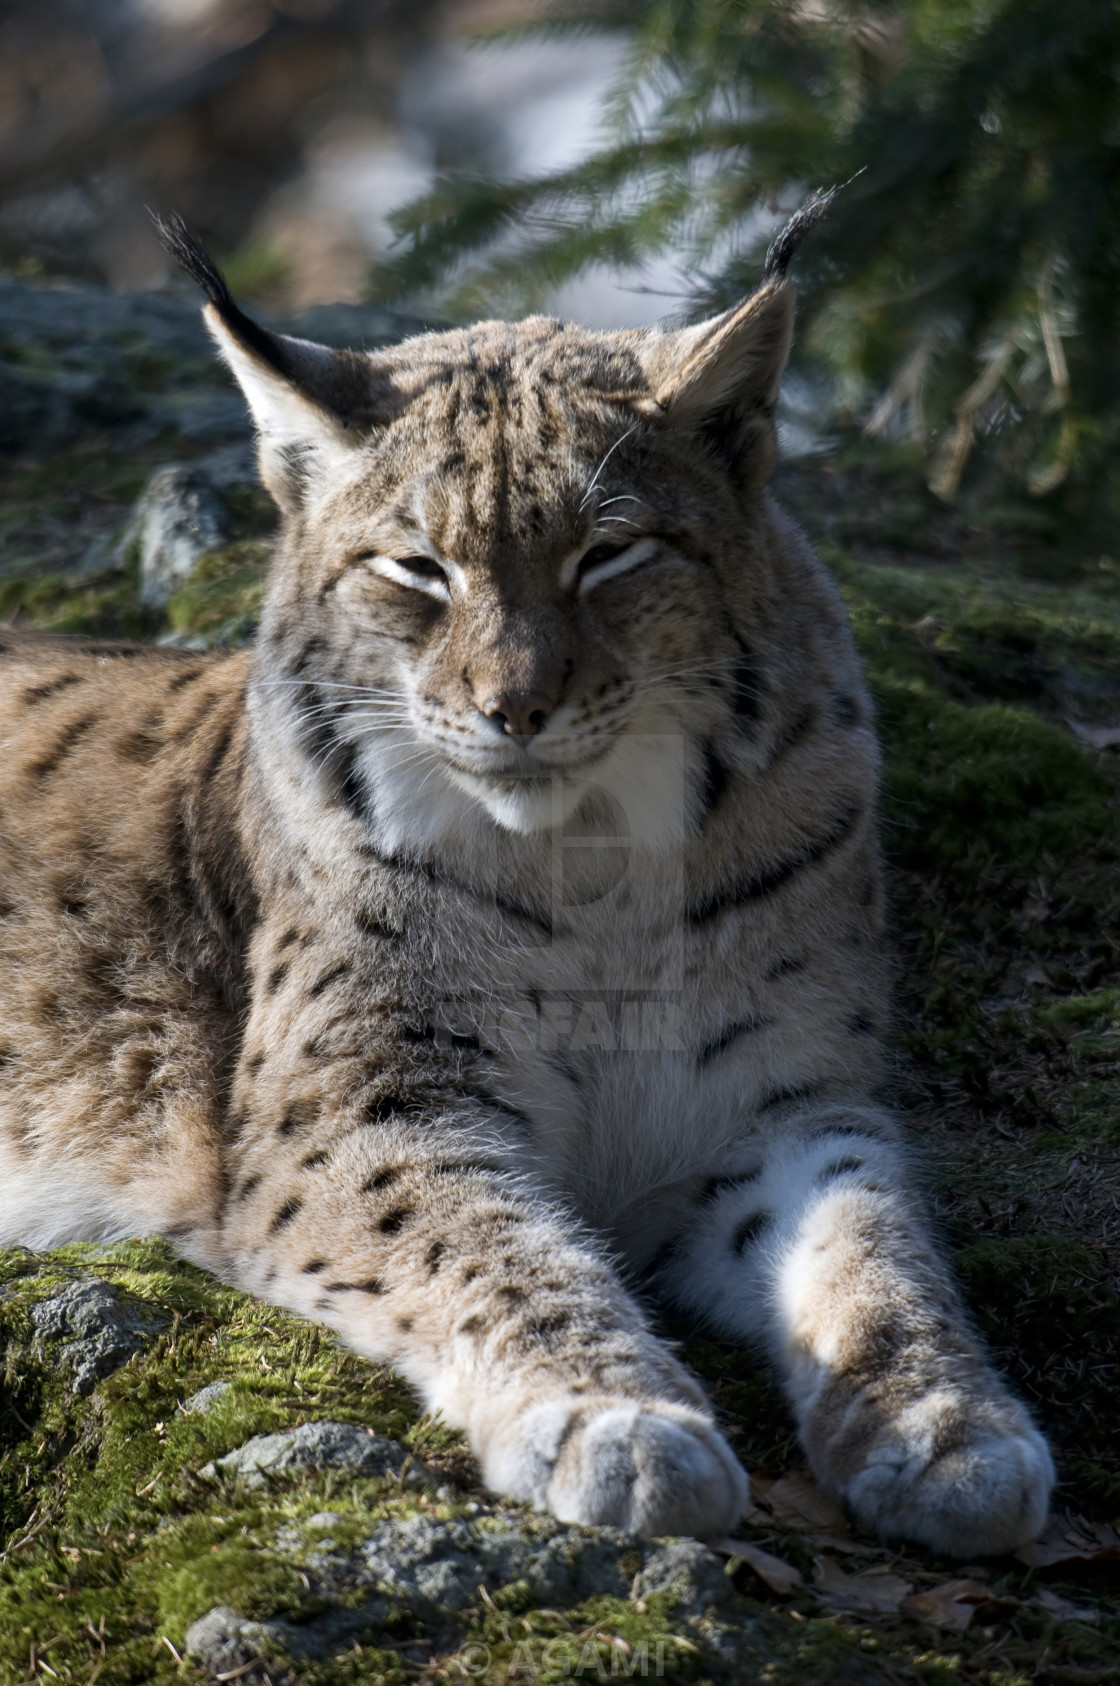 Lynx, Eurasian Lynx, Lynx lynx - License, download or print